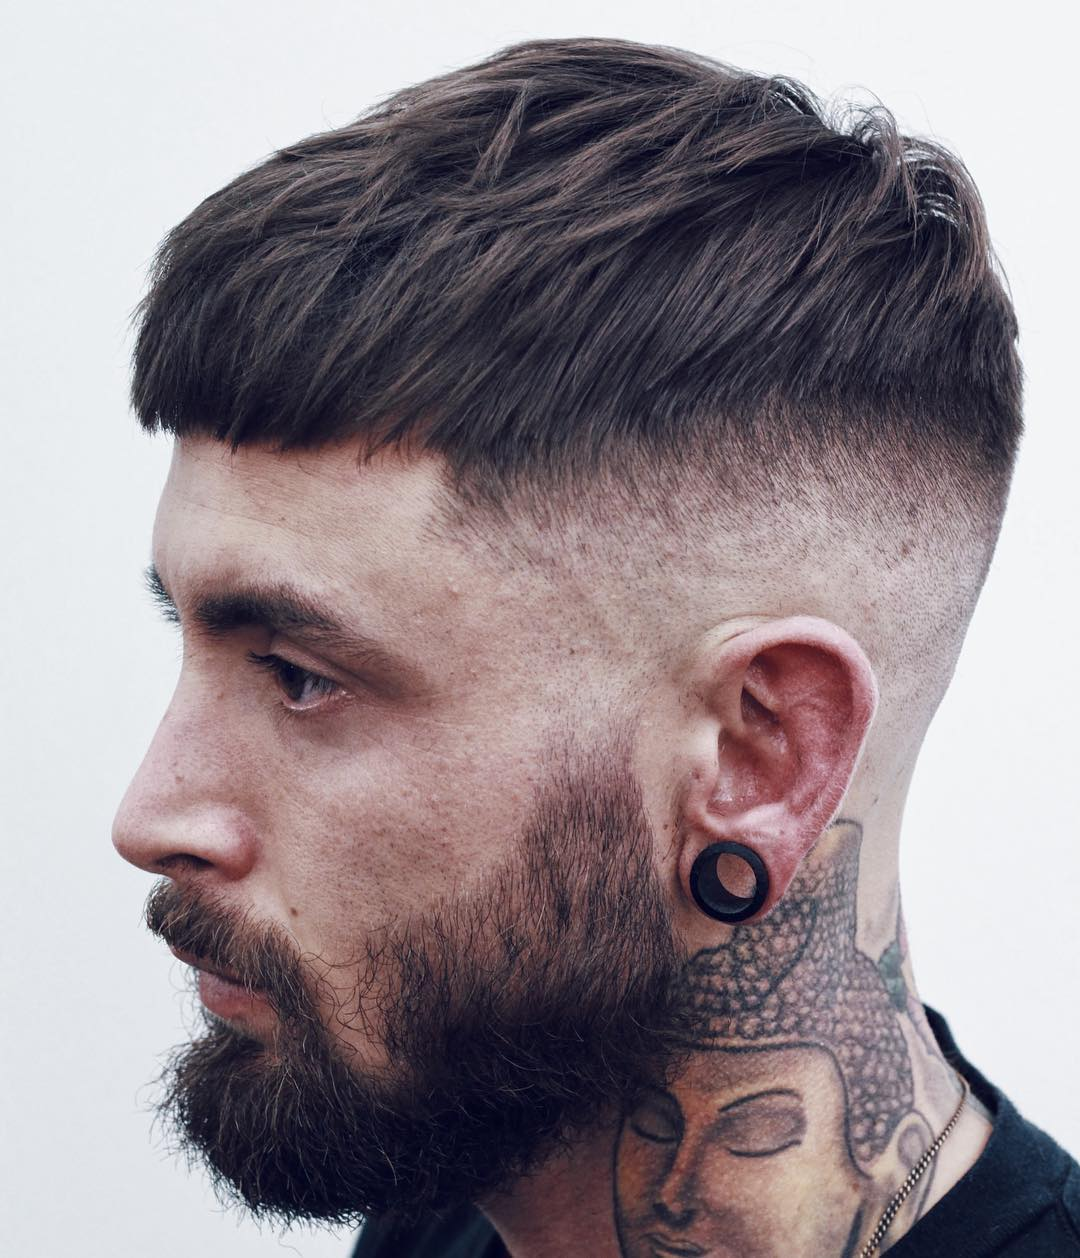 Hipster men hairstyles 25 hairstyles for hipster men look - 25 Thick Crop Texture